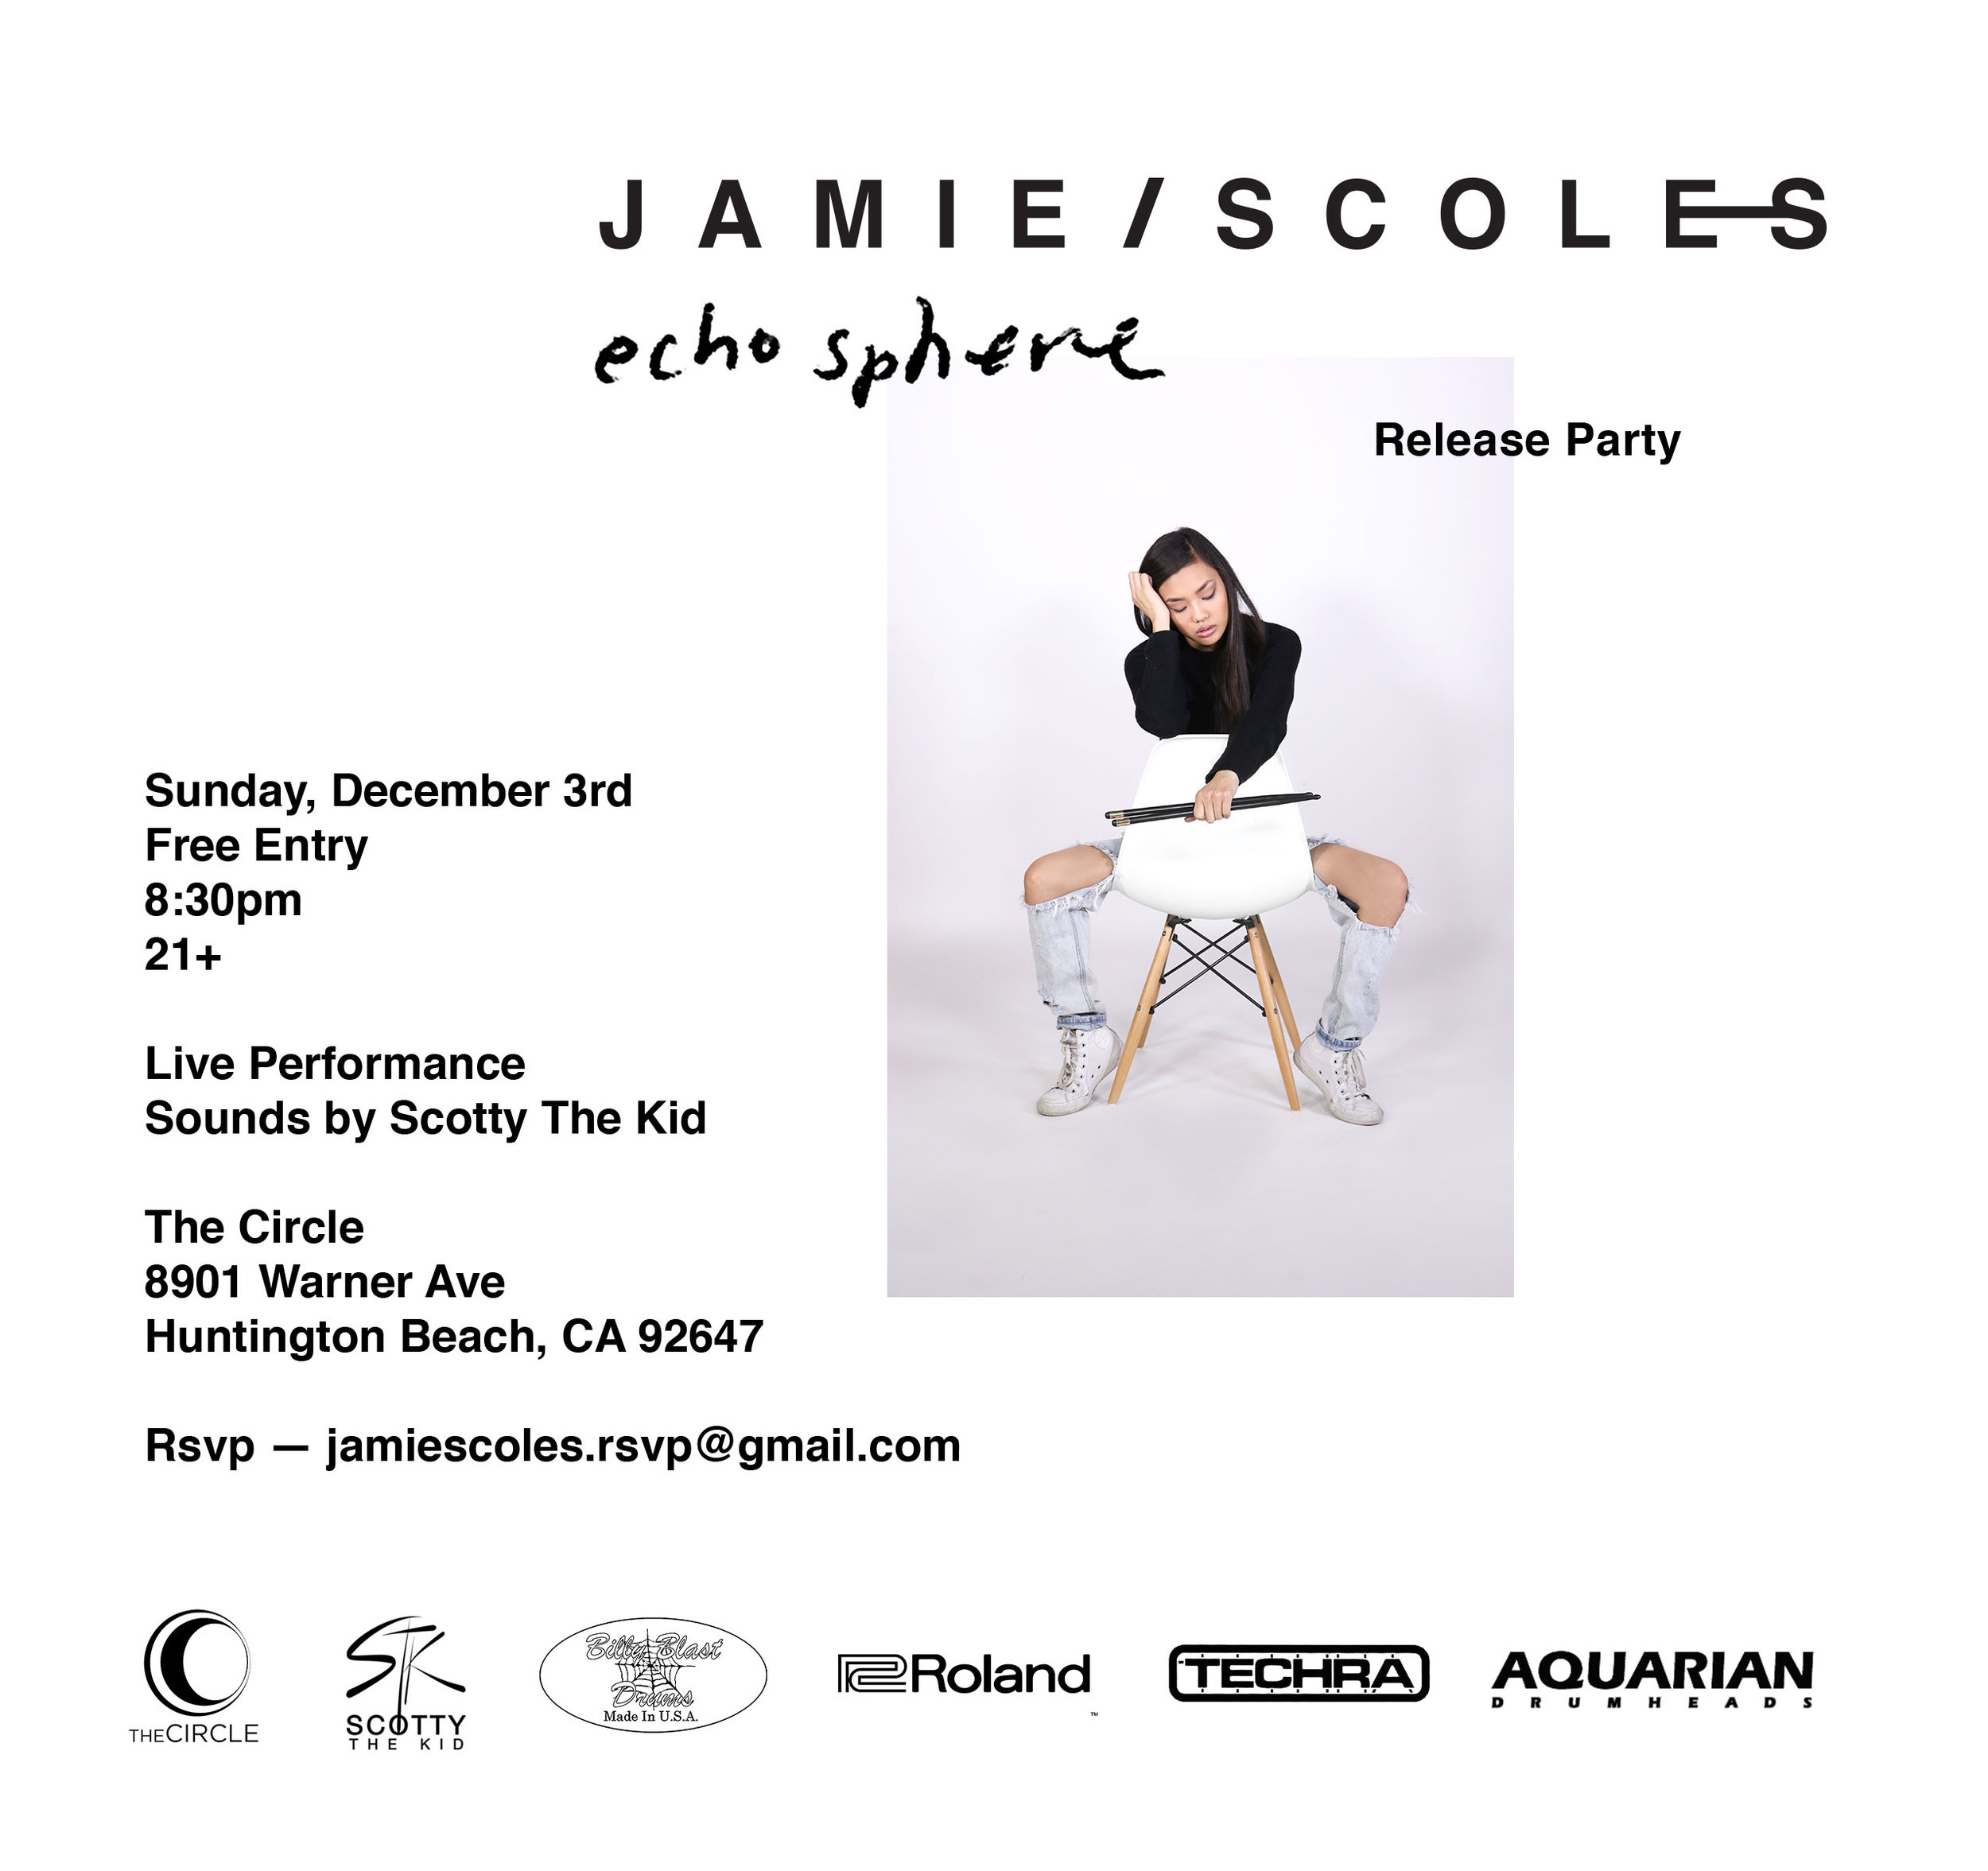 """Echosphere"" officially releases on 12/2/17 and a celebration is a necessity! Come and catch the very first live performance of the album and the very first live performance as a solo artist THIS SUNDAY on 12.3.17 in Huntington Beach, California! Come out and bring everyone you know - RSVP now at jamiescoles.rsvp@gmail.com.  Pre-order the Echosphere album NOW //  Click here to pre-order"